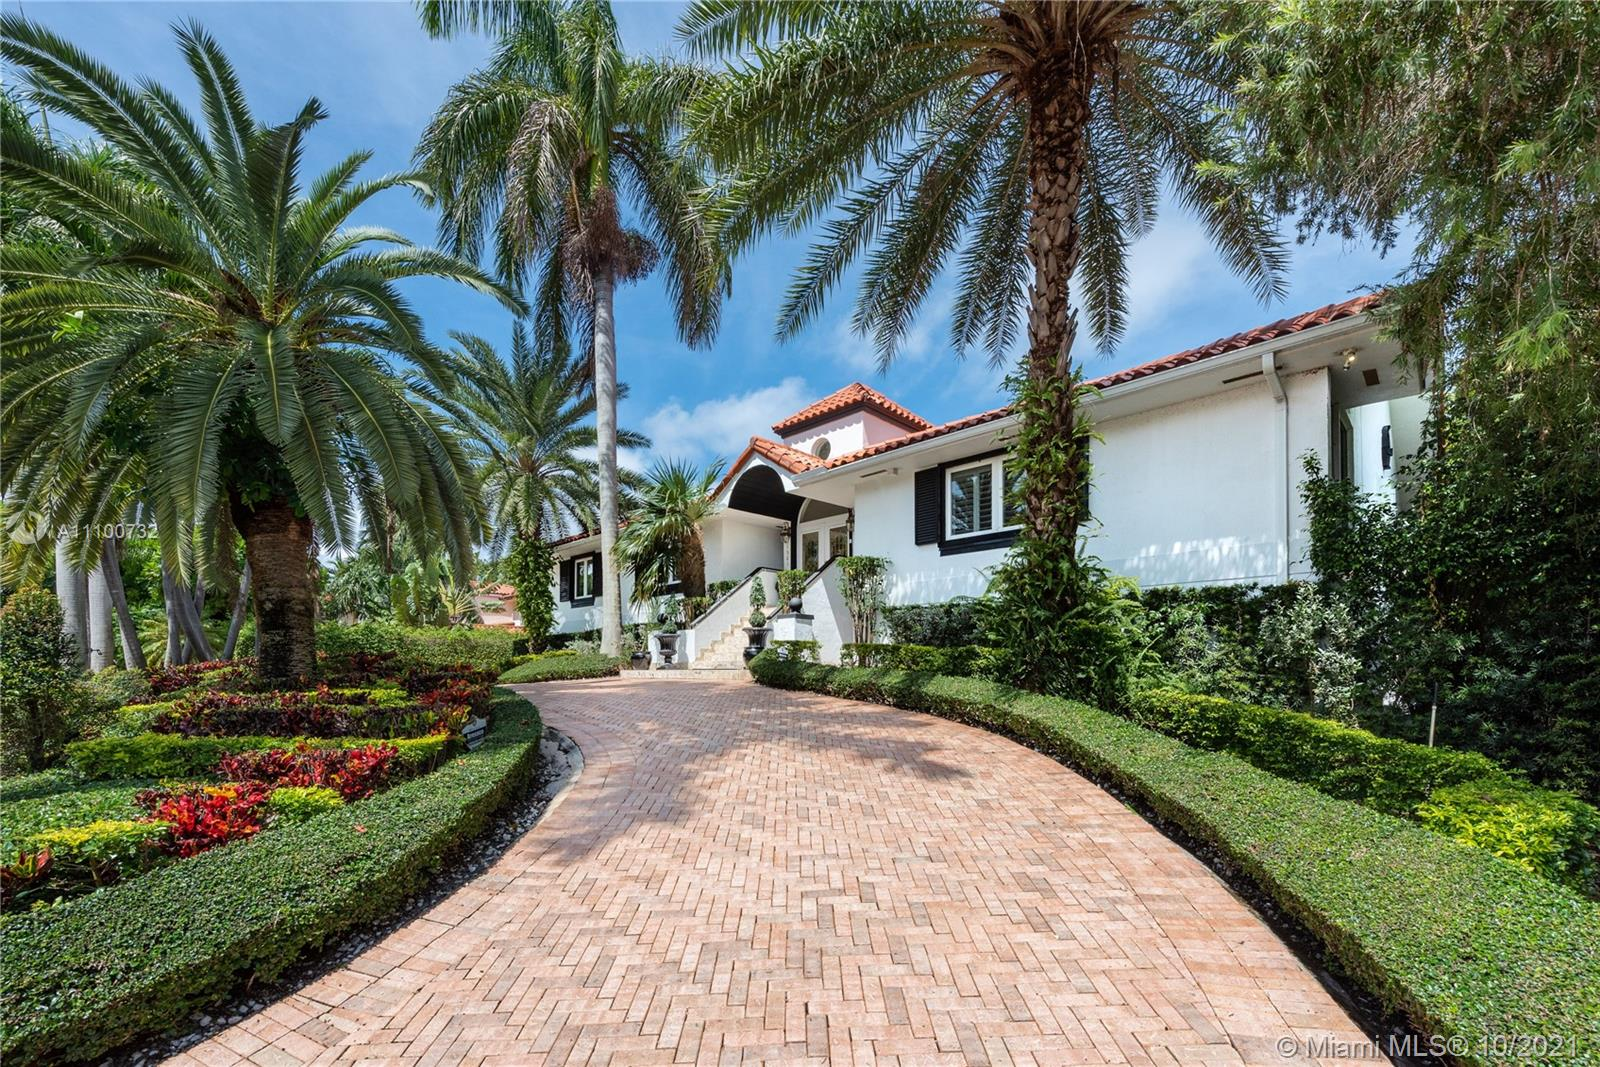 Elegant, two-story waterfront home with 5 bdrms/ 4½ baths (with bidets), heated pool. a 10-seat movie theater, and a 4-car garage. 4,642 adj. sq. ft. on a 12,600-ft waterfront lot (no access to Bay). A curved driveway leads to the front door. Lush landscaping. Foyer entry. Formal dining room to the right. Elevator. All white, newer kitchen with high-end appliances, pantry, and laundry closet overlooks the spacious Family room. Downstairs is an in-law suite with a full bath, billiard room, gym area, library/office, and storage. Outside find the covered entertainment patio with bar. Water cascades, a chickee hut, and the theater entrance. All of these are in gated Gables by the Sea. Excellent public and private schools nearby. Spectacular!